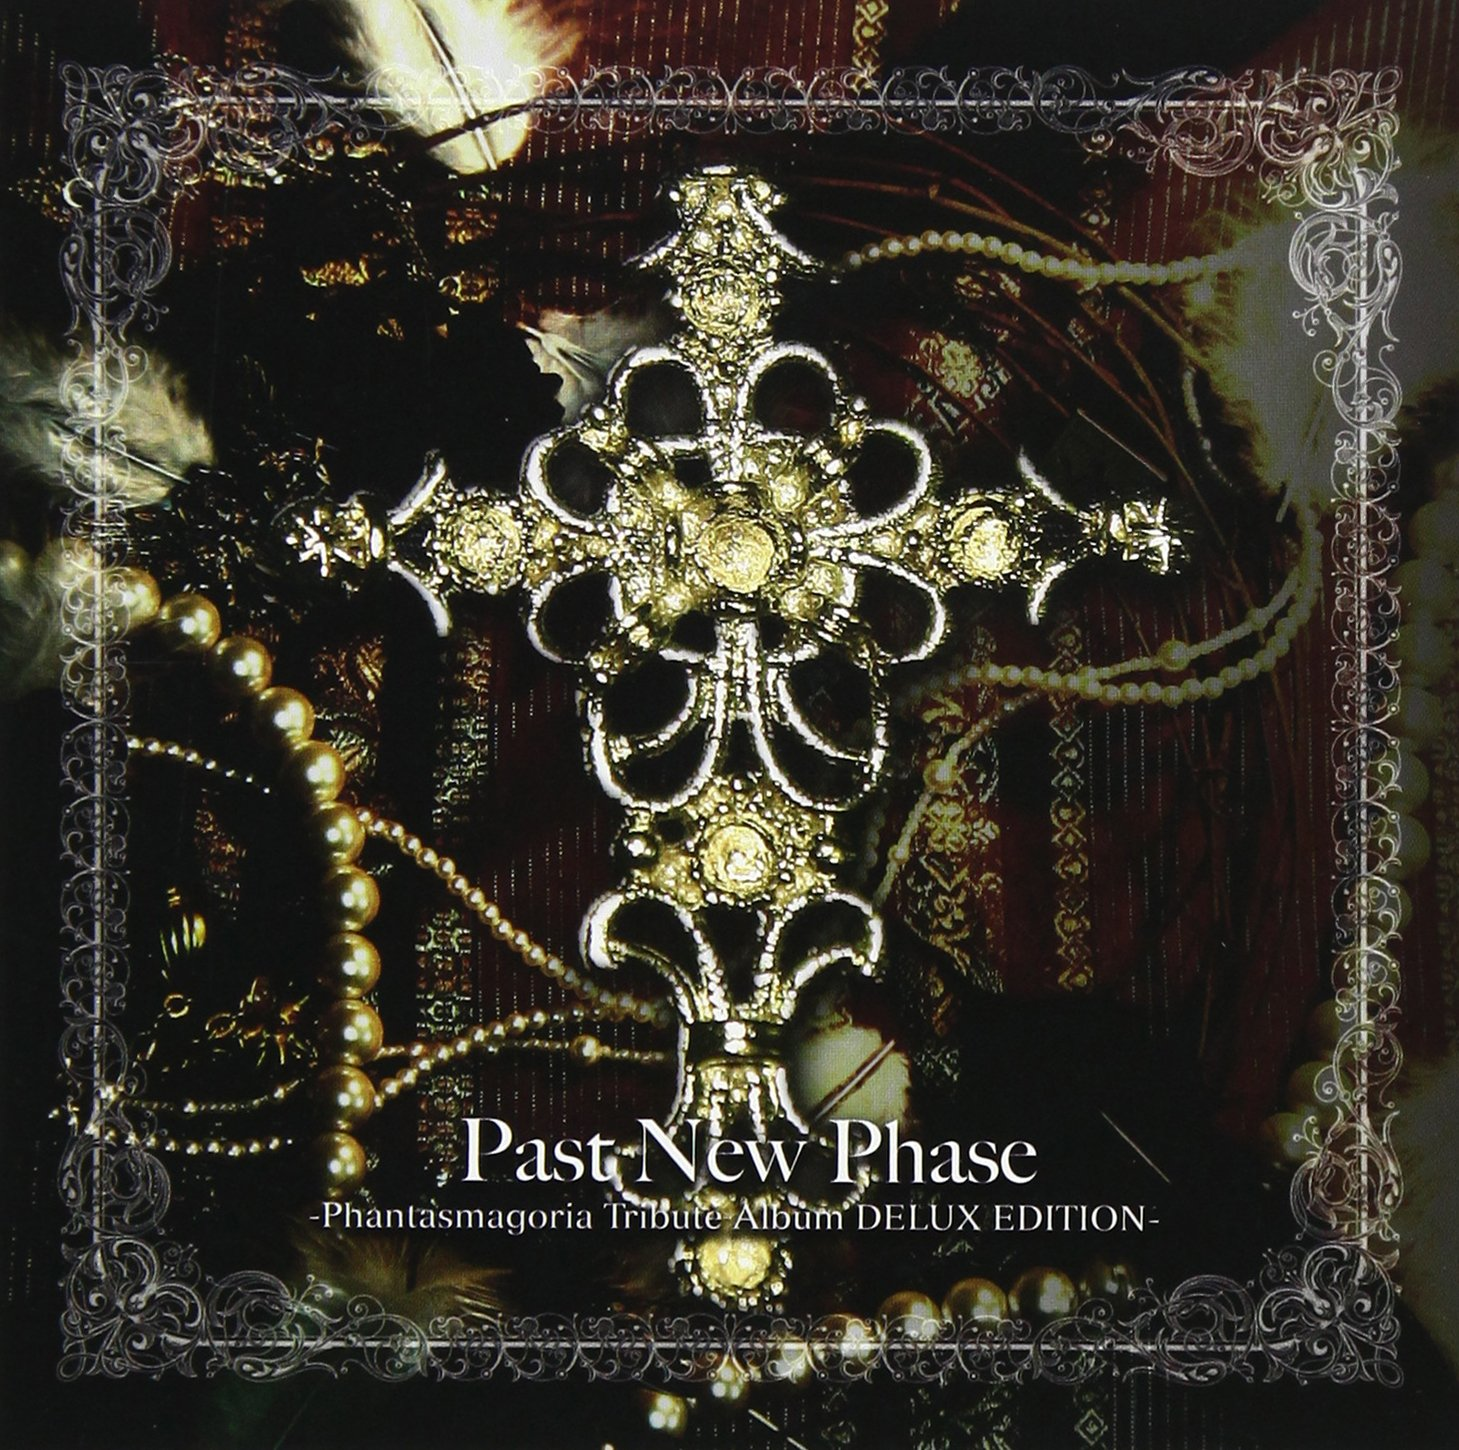 PHANTASMAGORIA - PAST NEW PHASE-DELUX EDITION- +2(remaster) - Amazon.com  Music